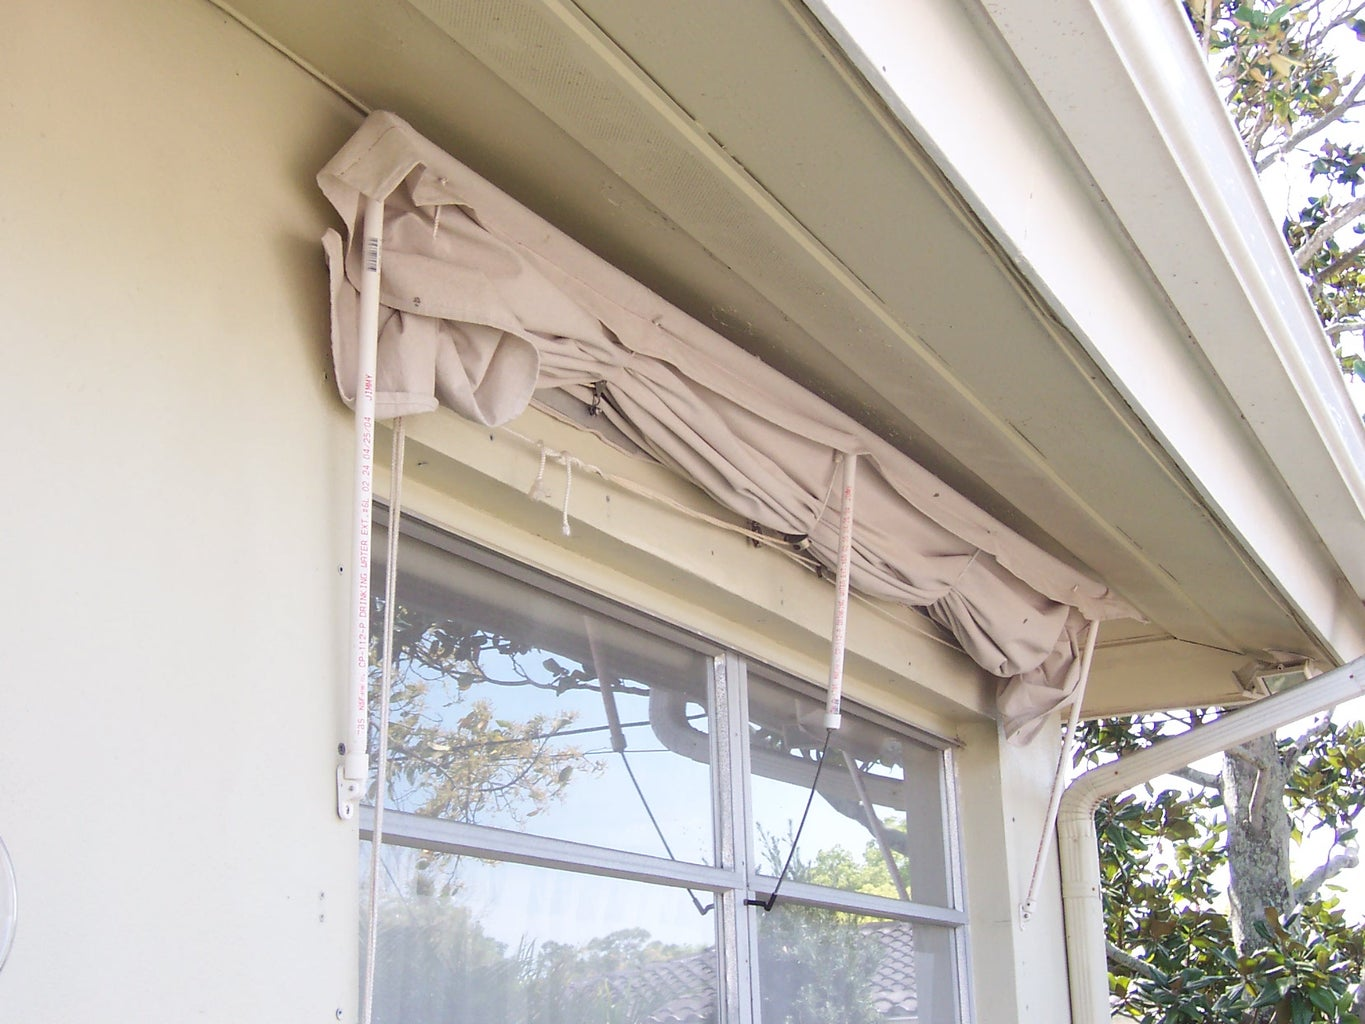 Retractable Window Awning Made of PVC Frame & Drop Cloth Fabric